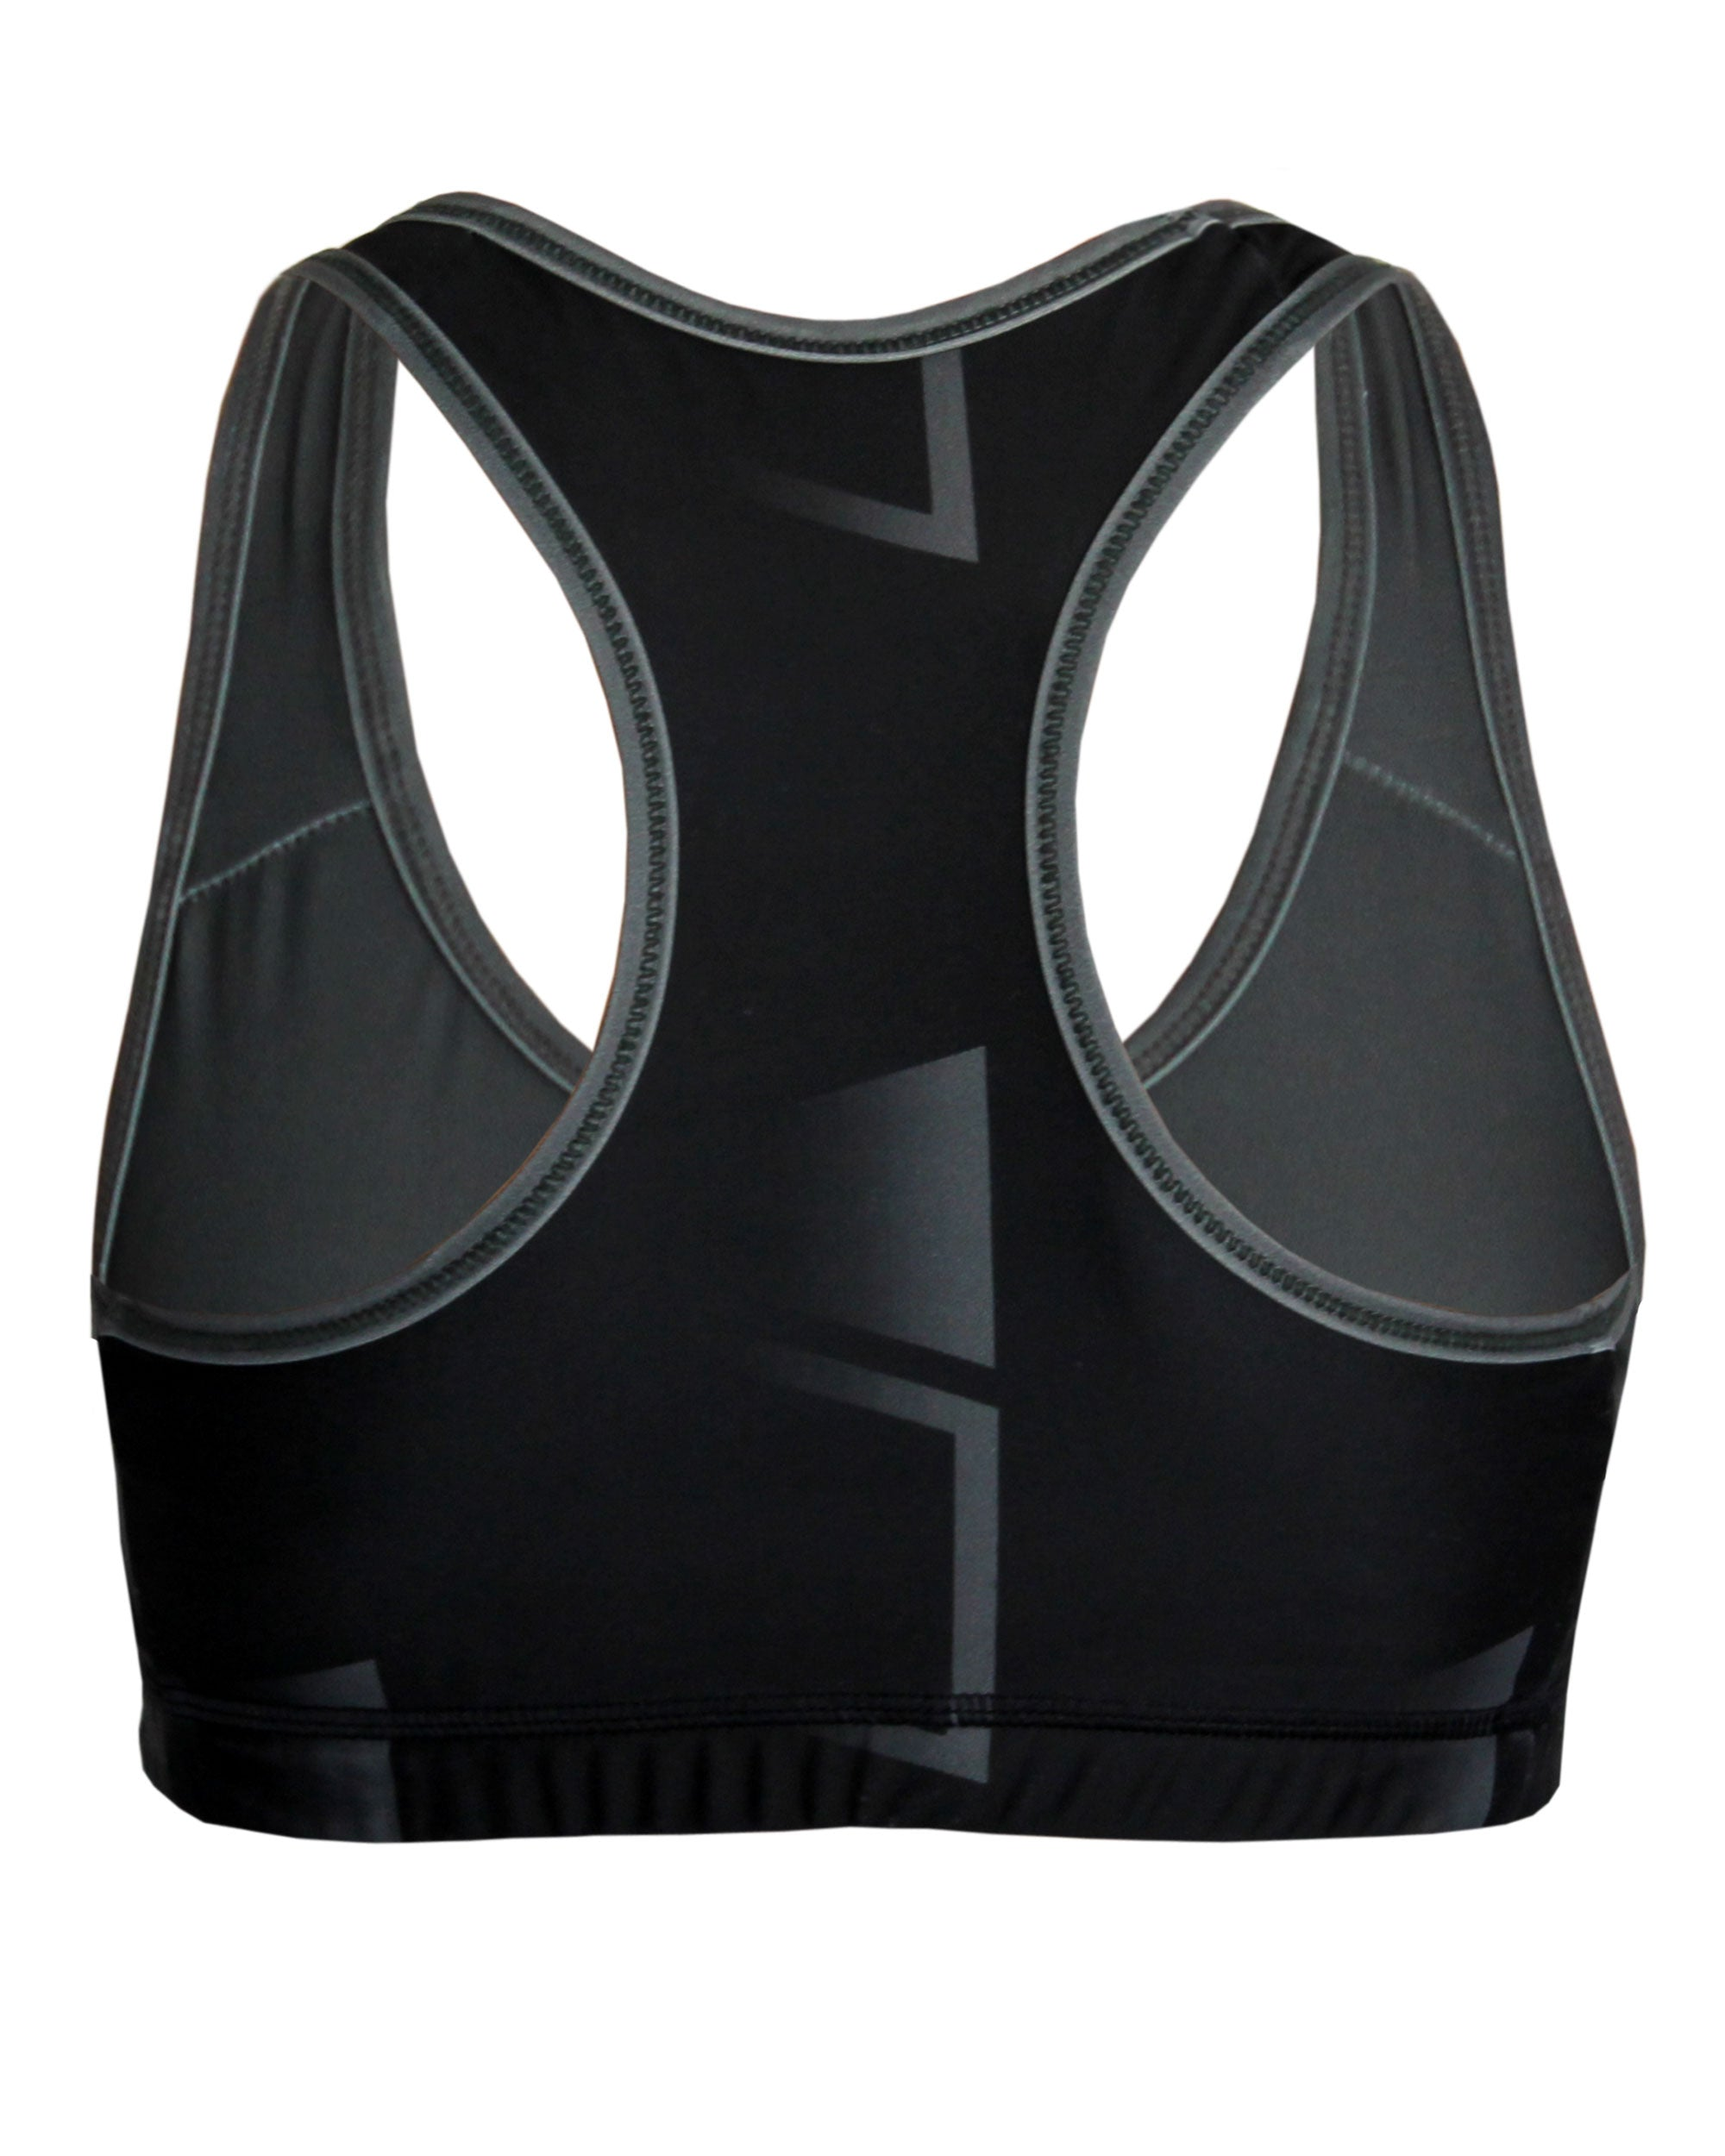 CLUB BLACK Intensity Sports Bra VIVOLICIOUS Chafe Free Active Wear